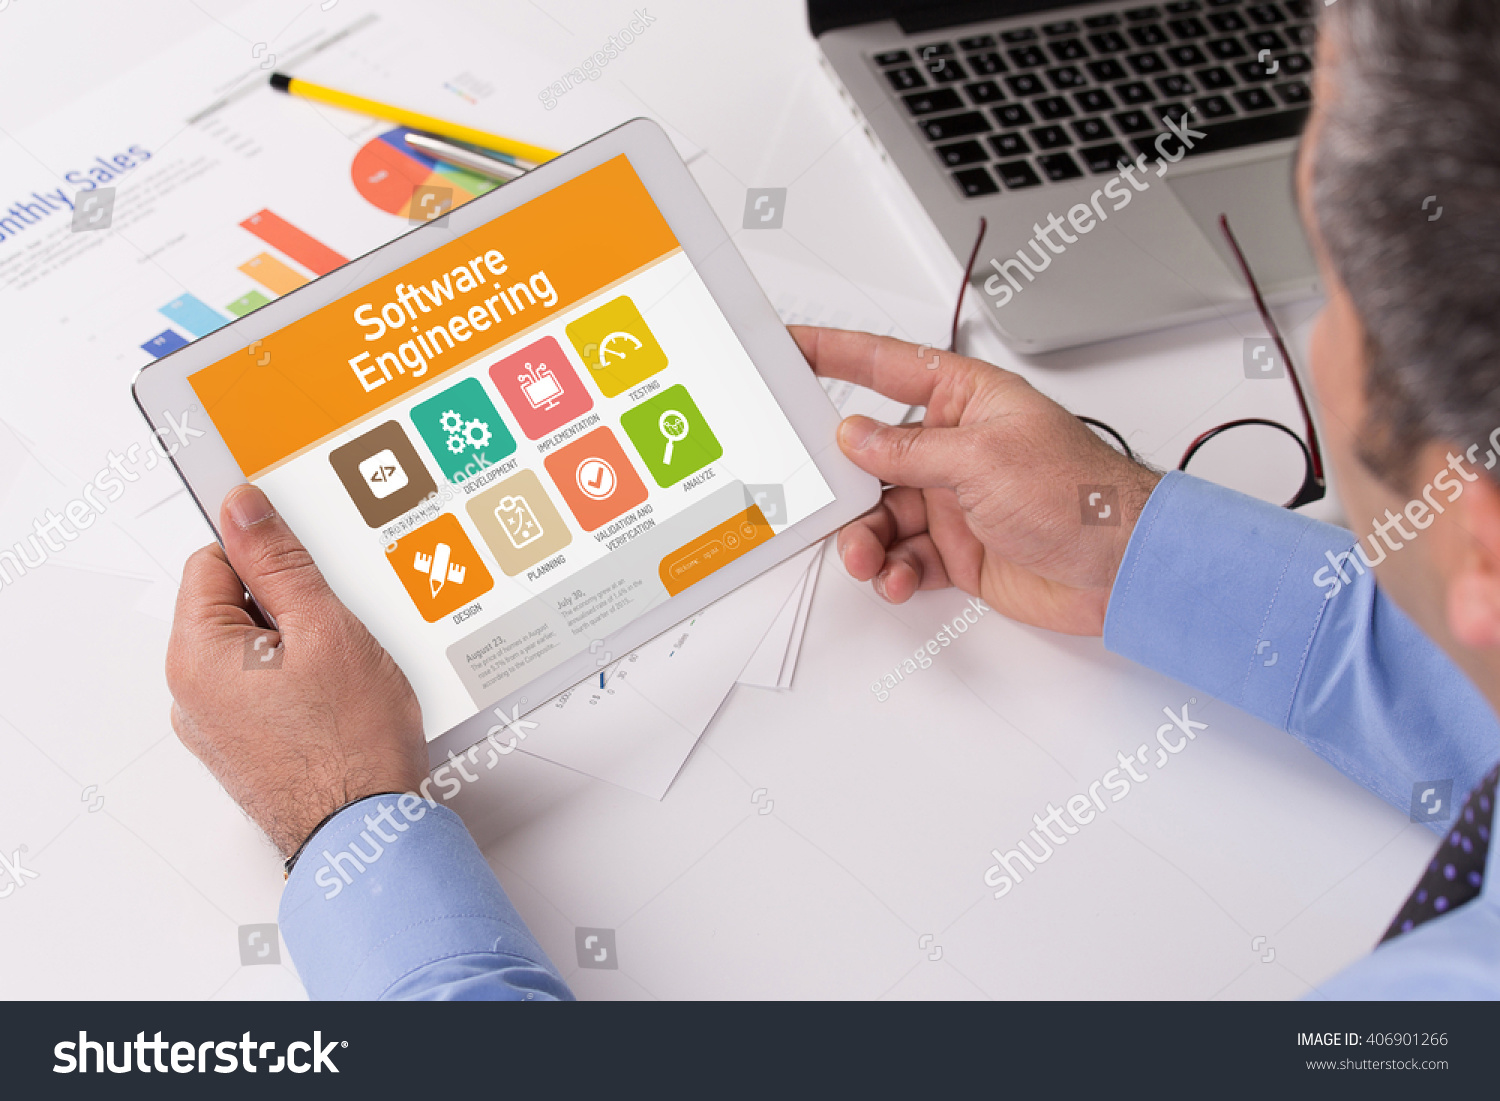 Software engineering screen on tablet pc stock photo edit now software engineering screen on the tablet pc ccuart Image collections